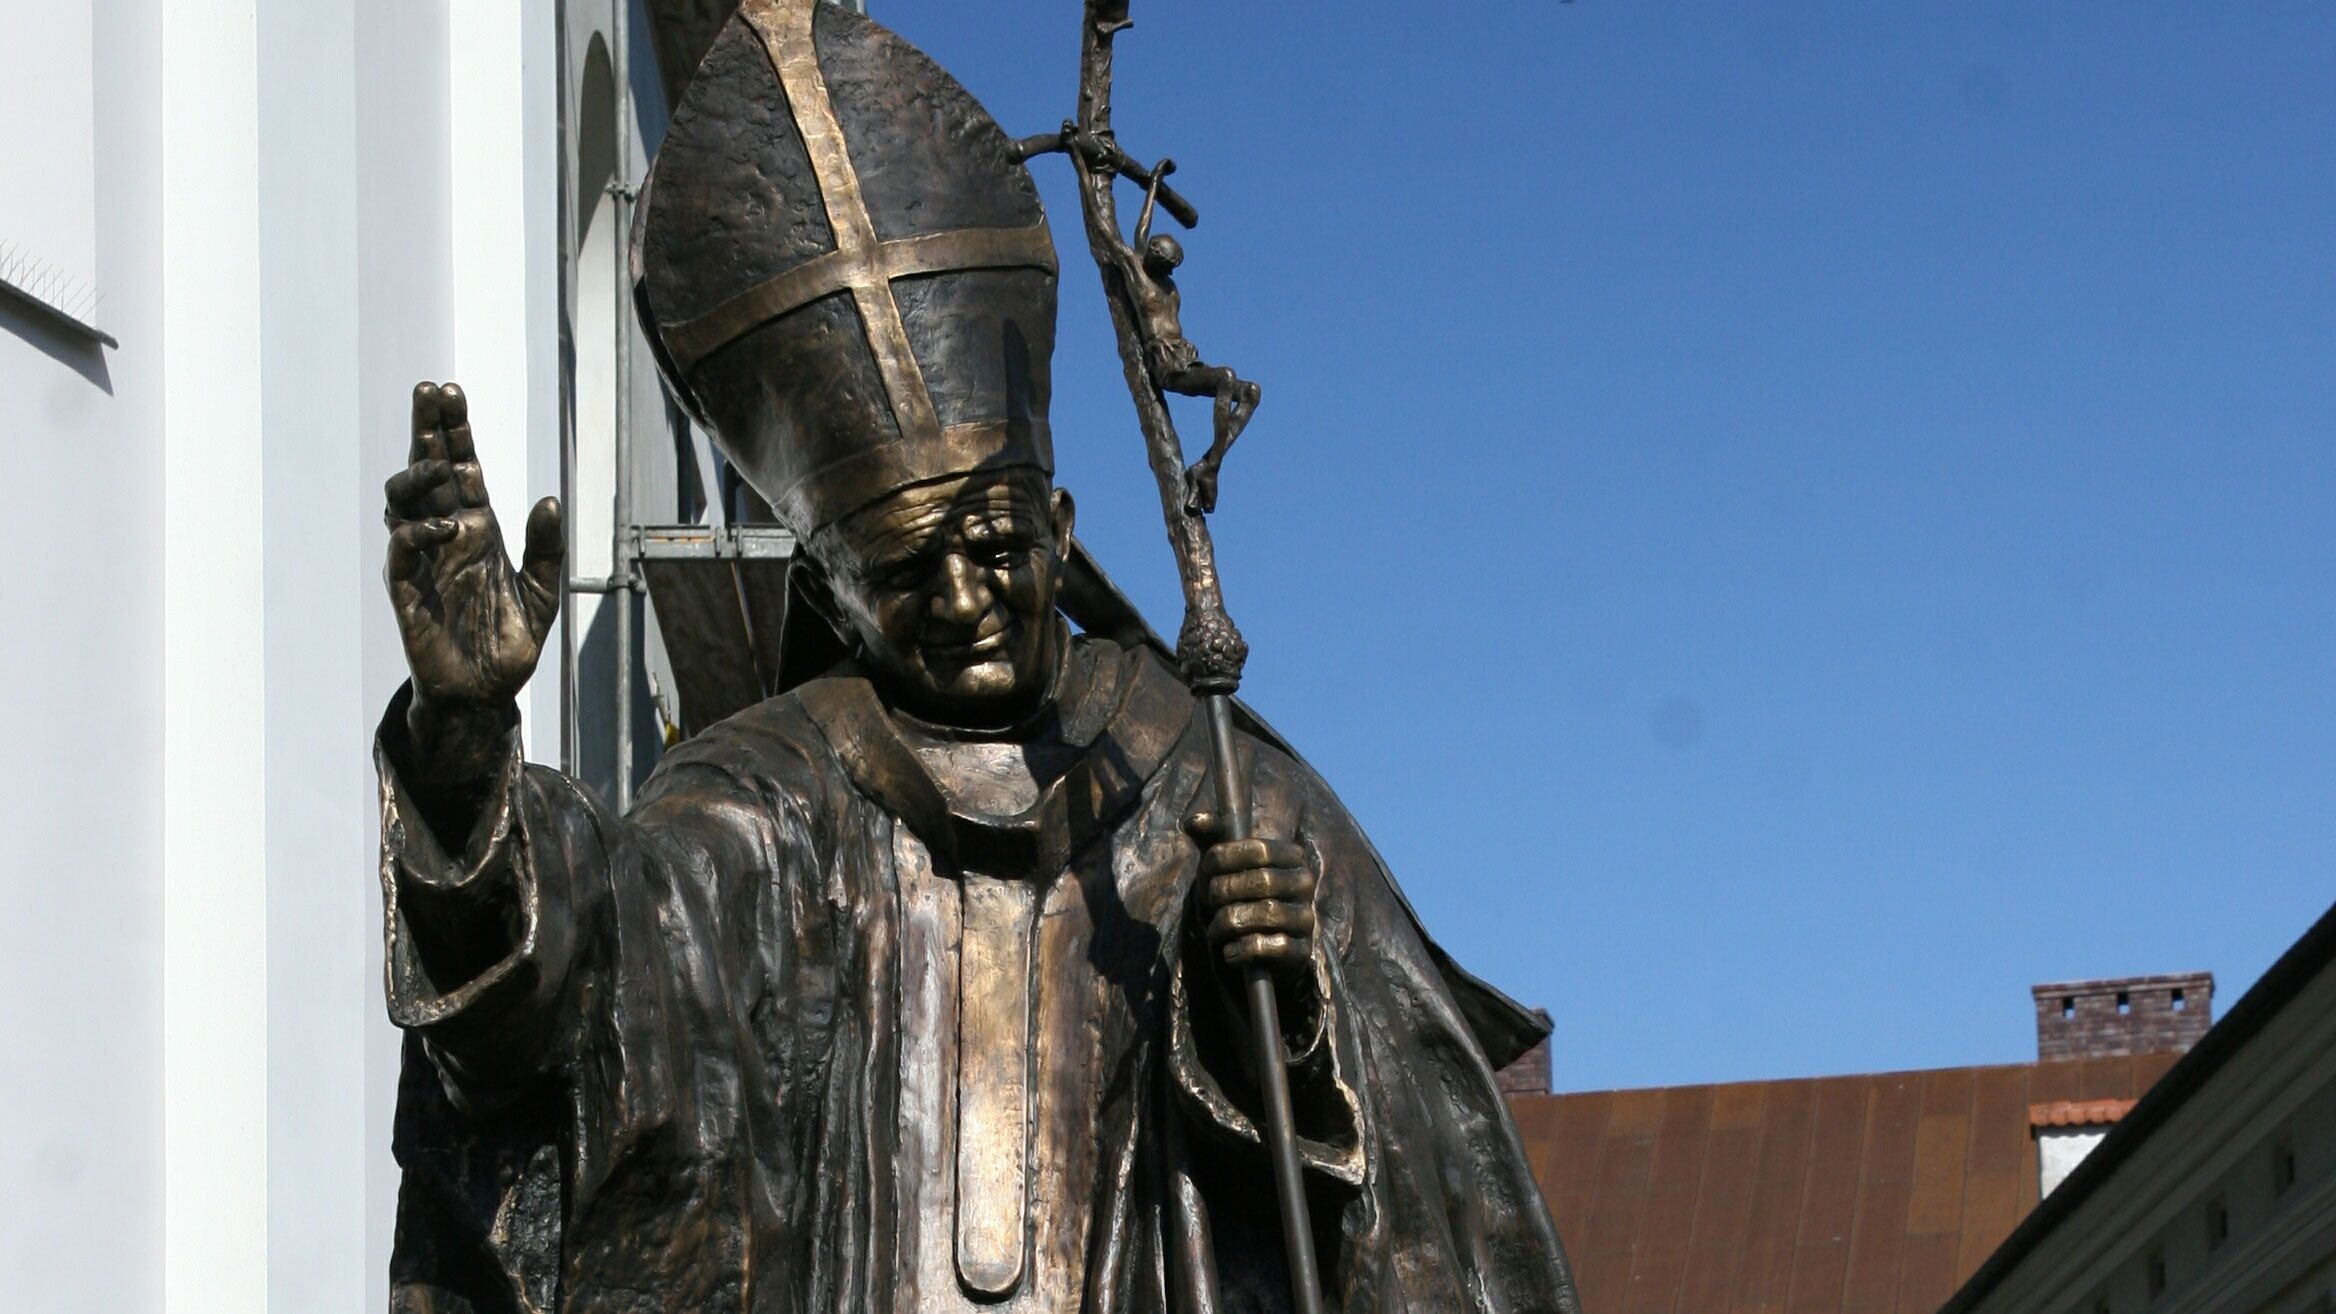 Statue in front of the Blessed Virgin Mary in Poland